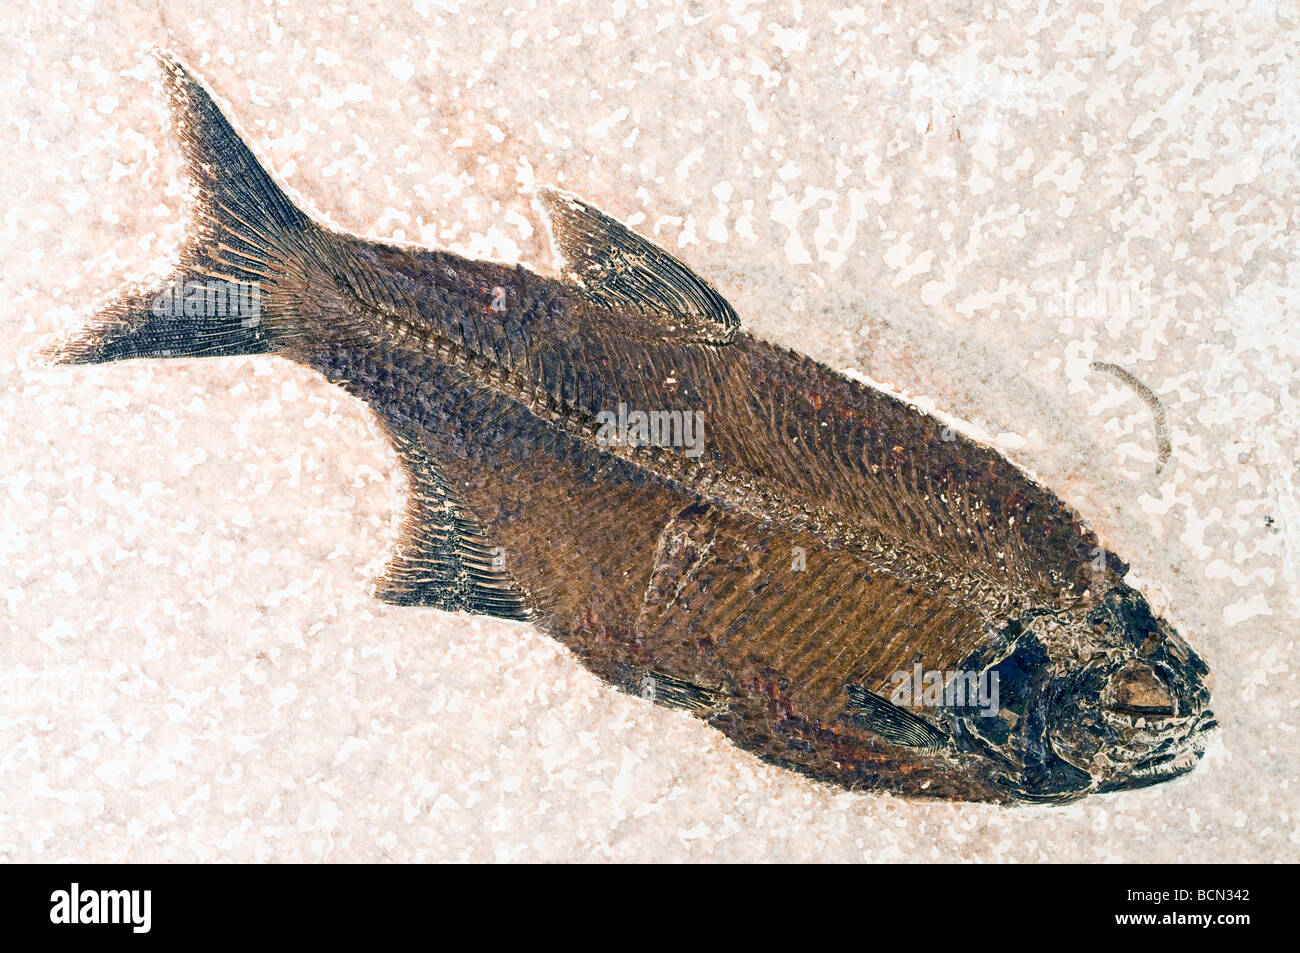 Mooneye Fish Fossil  Eohiodon falcatus with crushed shell in its stomach which may have killed it Wyoming USA - Stock Image